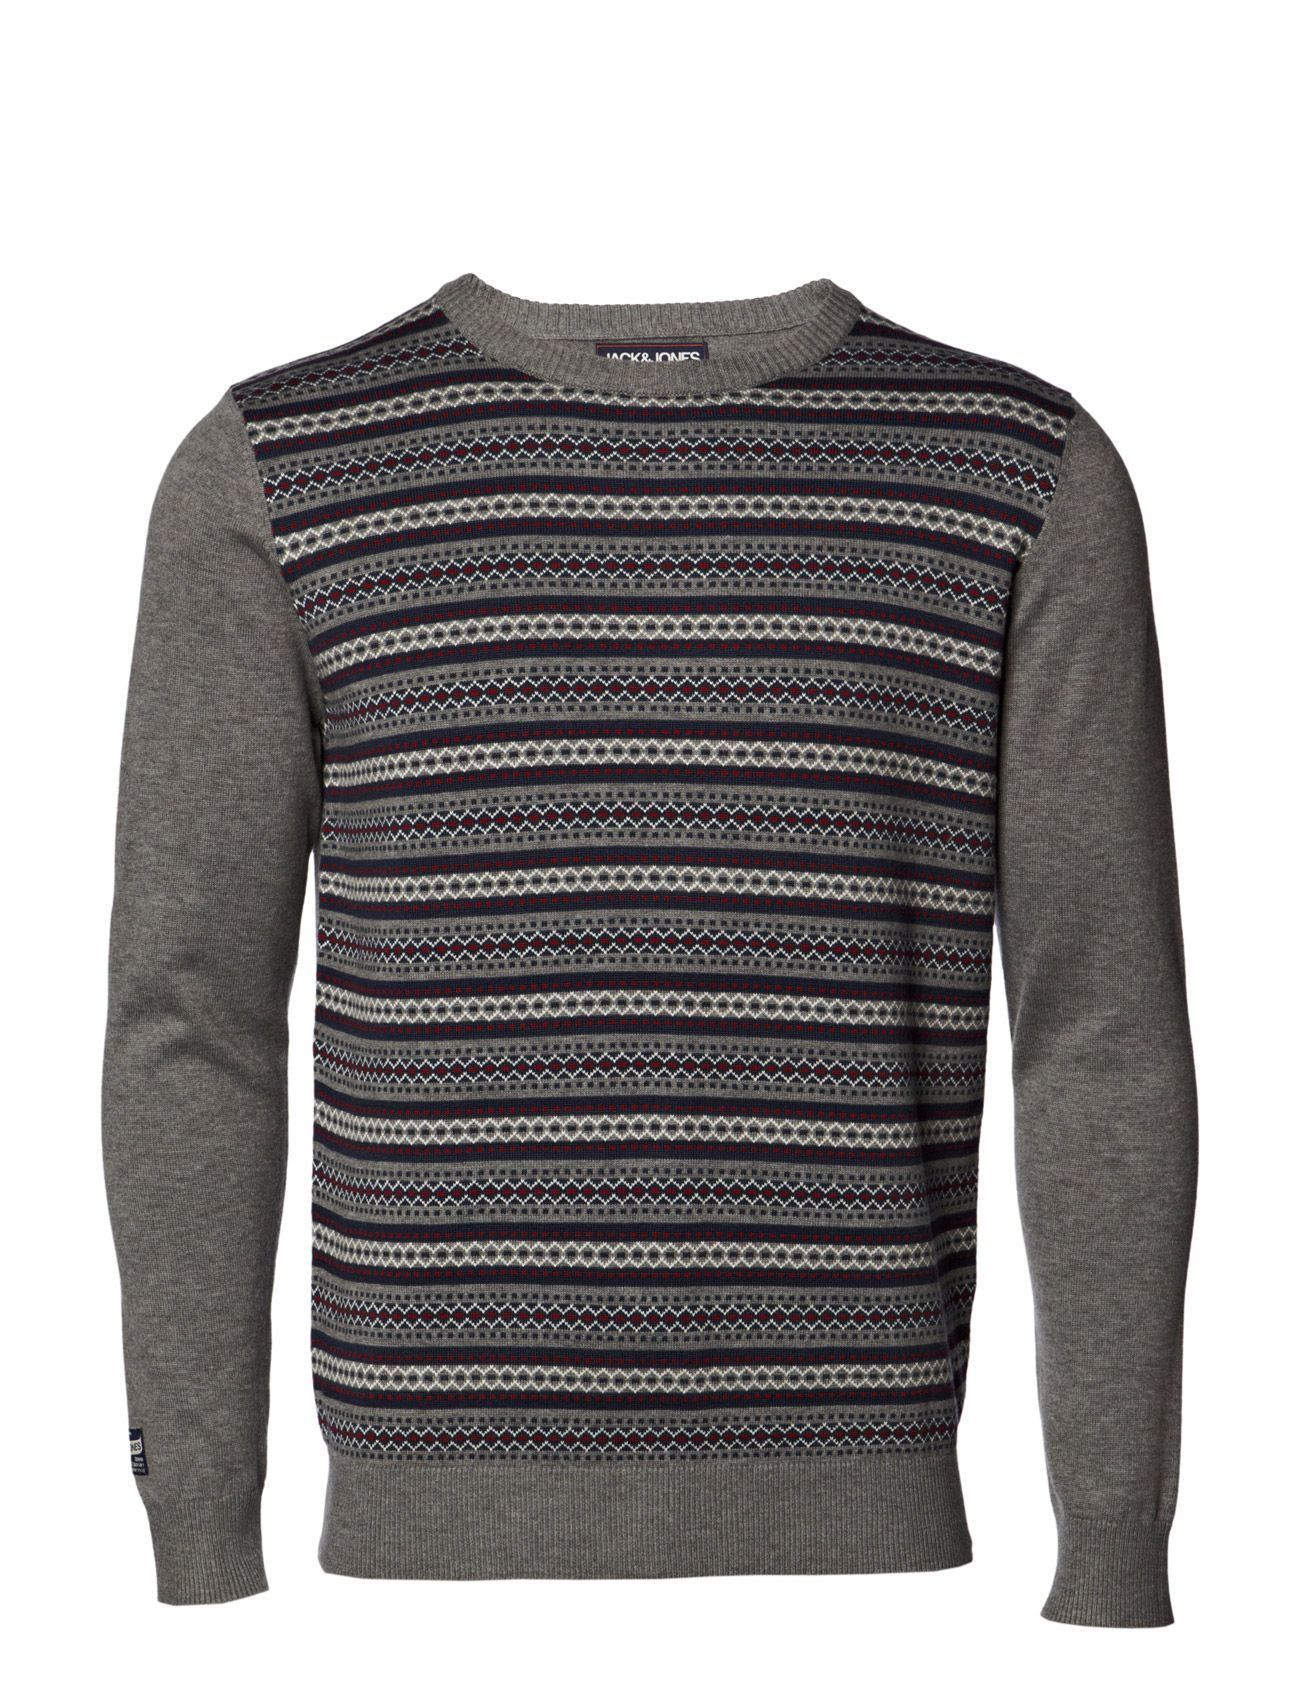 Jack & Jones NOVAL KNIT PACK 1/2 12 ORG